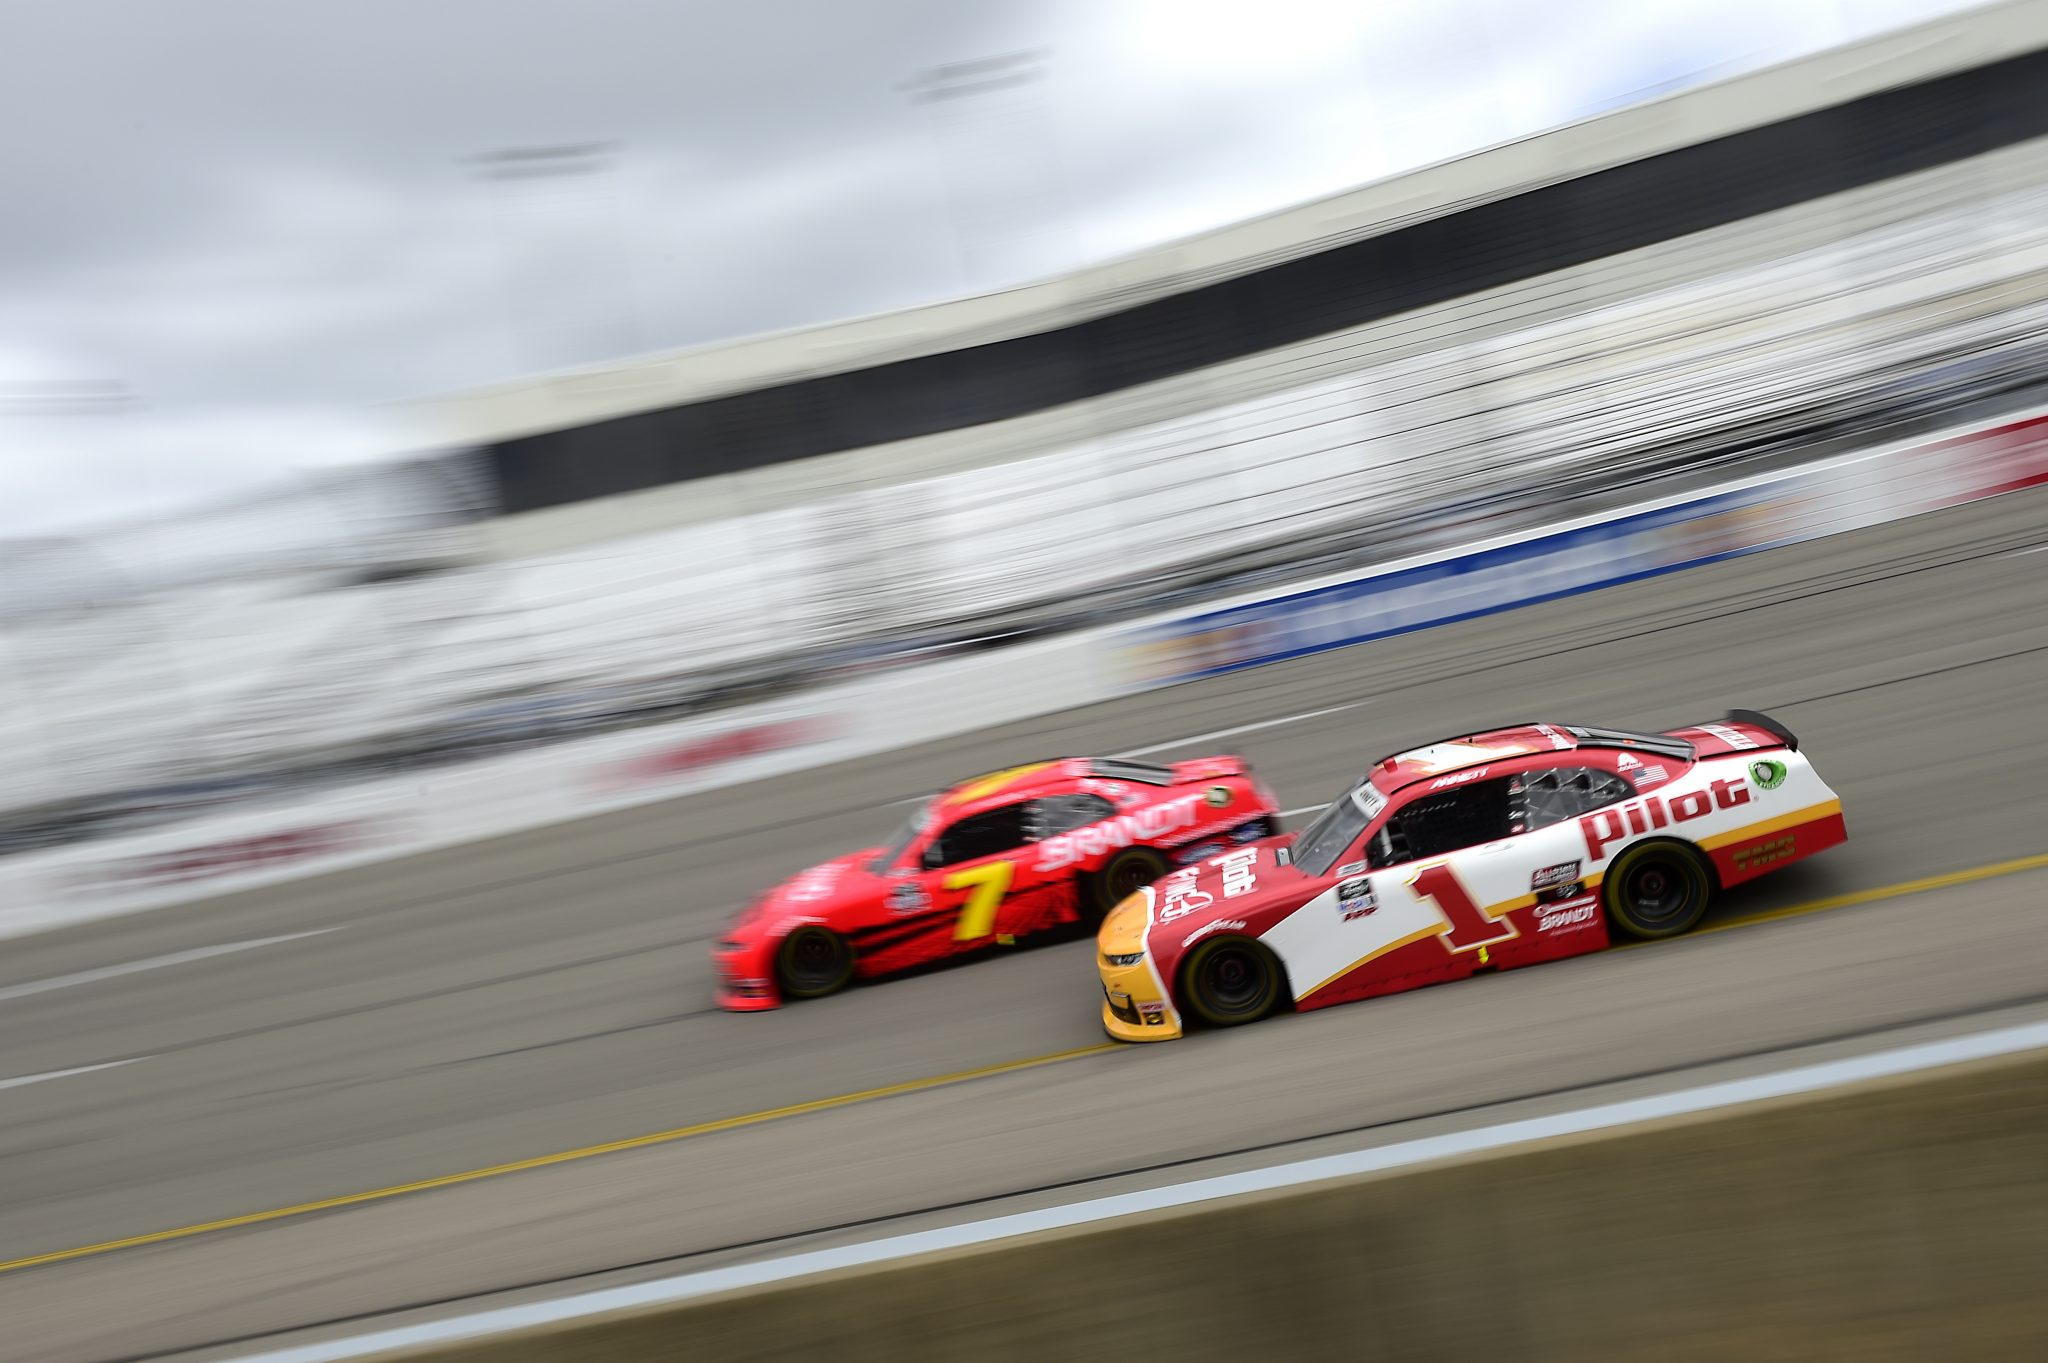 RICHMOND, VIRGINIA - SEPTEMBER 12: Michael Annett, driver of the #1 Pilot Flying J Chevrolet, and Justin Allgaier, driver of the #7 BRANDT Chevrolet, race during the NASCAR Xfinity Series Virginia is for Racing Lovers 250 at Richmond Raceway on September 12, 2020 in Richmond, Virginia. (Photo by Jared C. Tilton/Getty Images) | Getty Images